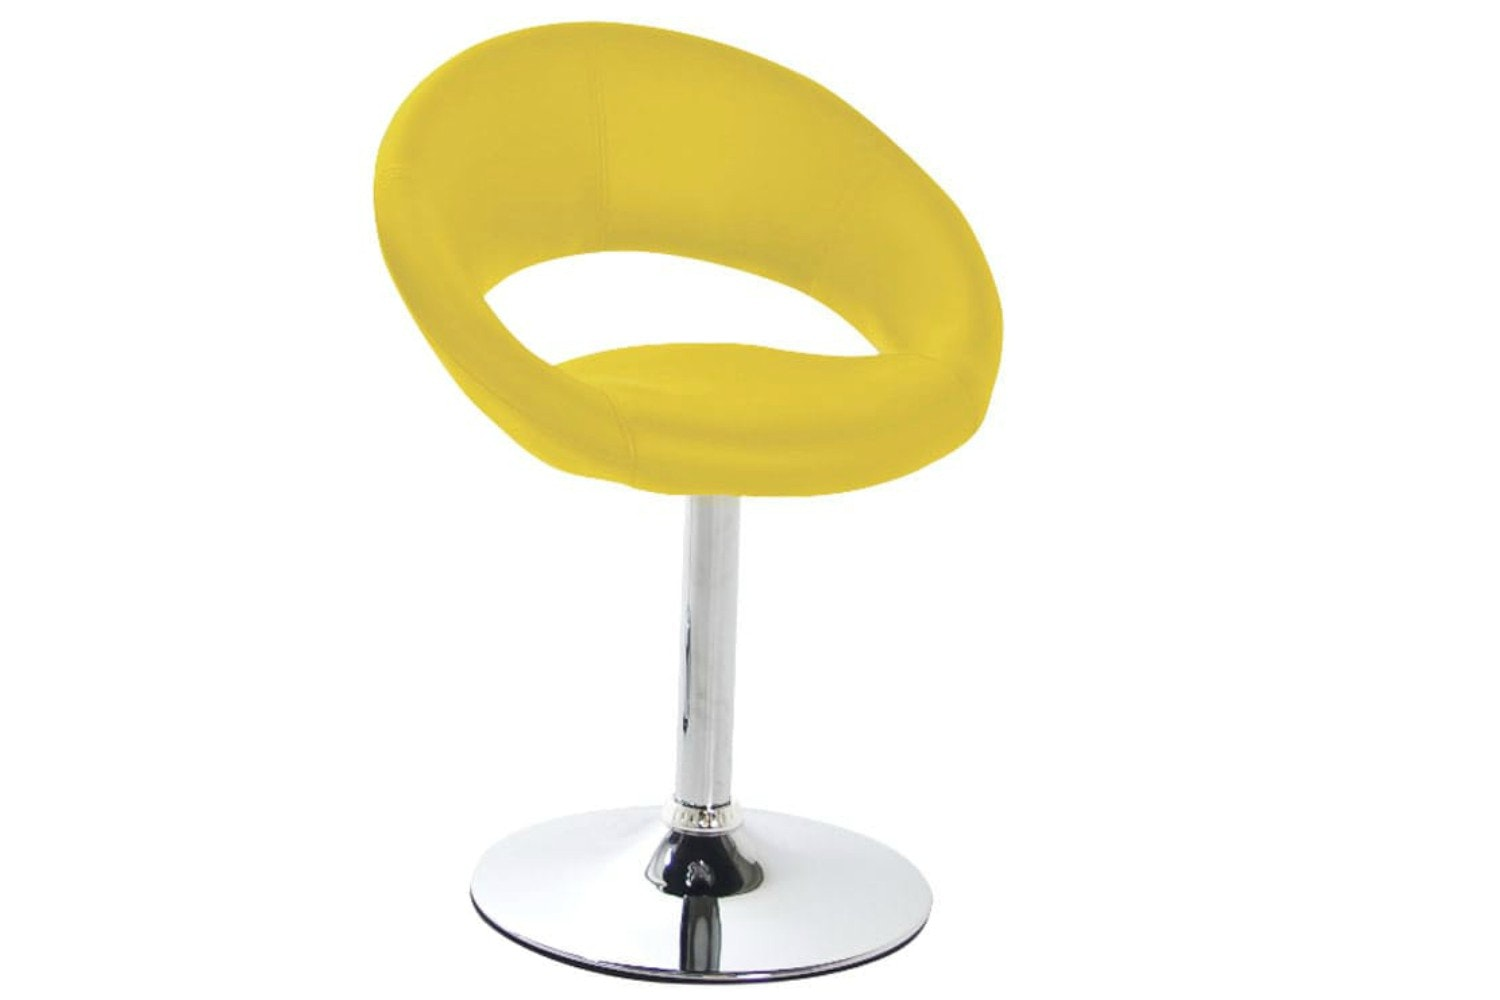 Plump Dining Chair Yellow